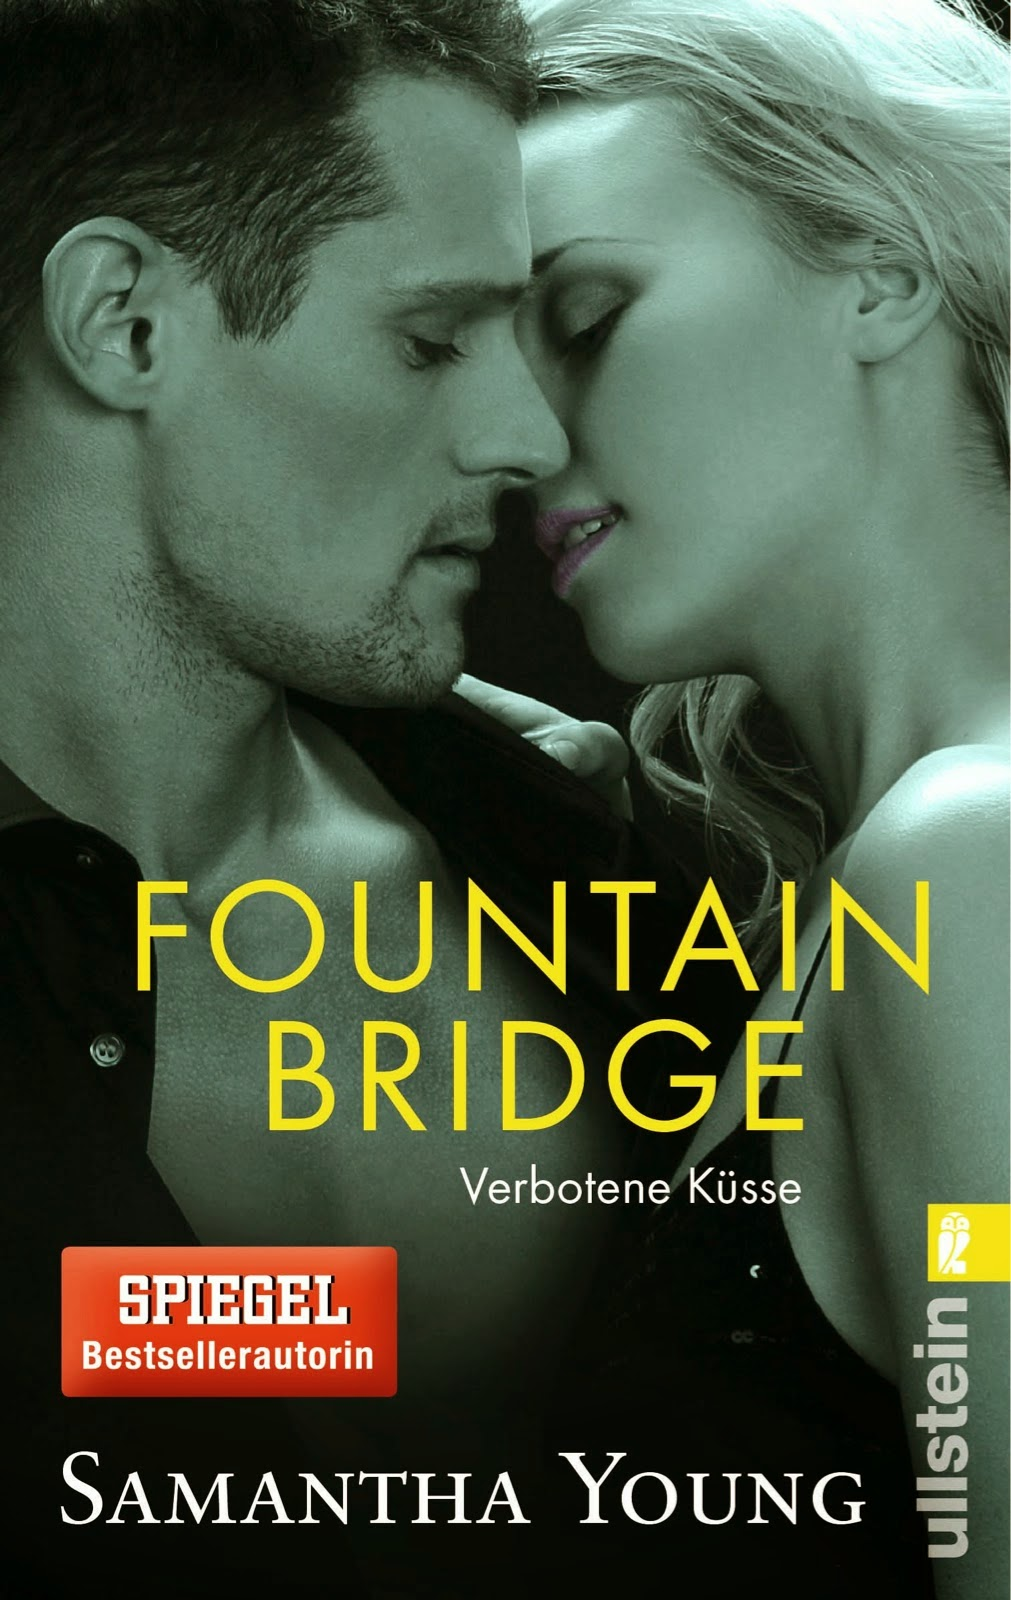 http://sharonbakerliest.blogspot.de/2014/05/rezension-samantha-young-fountain.html